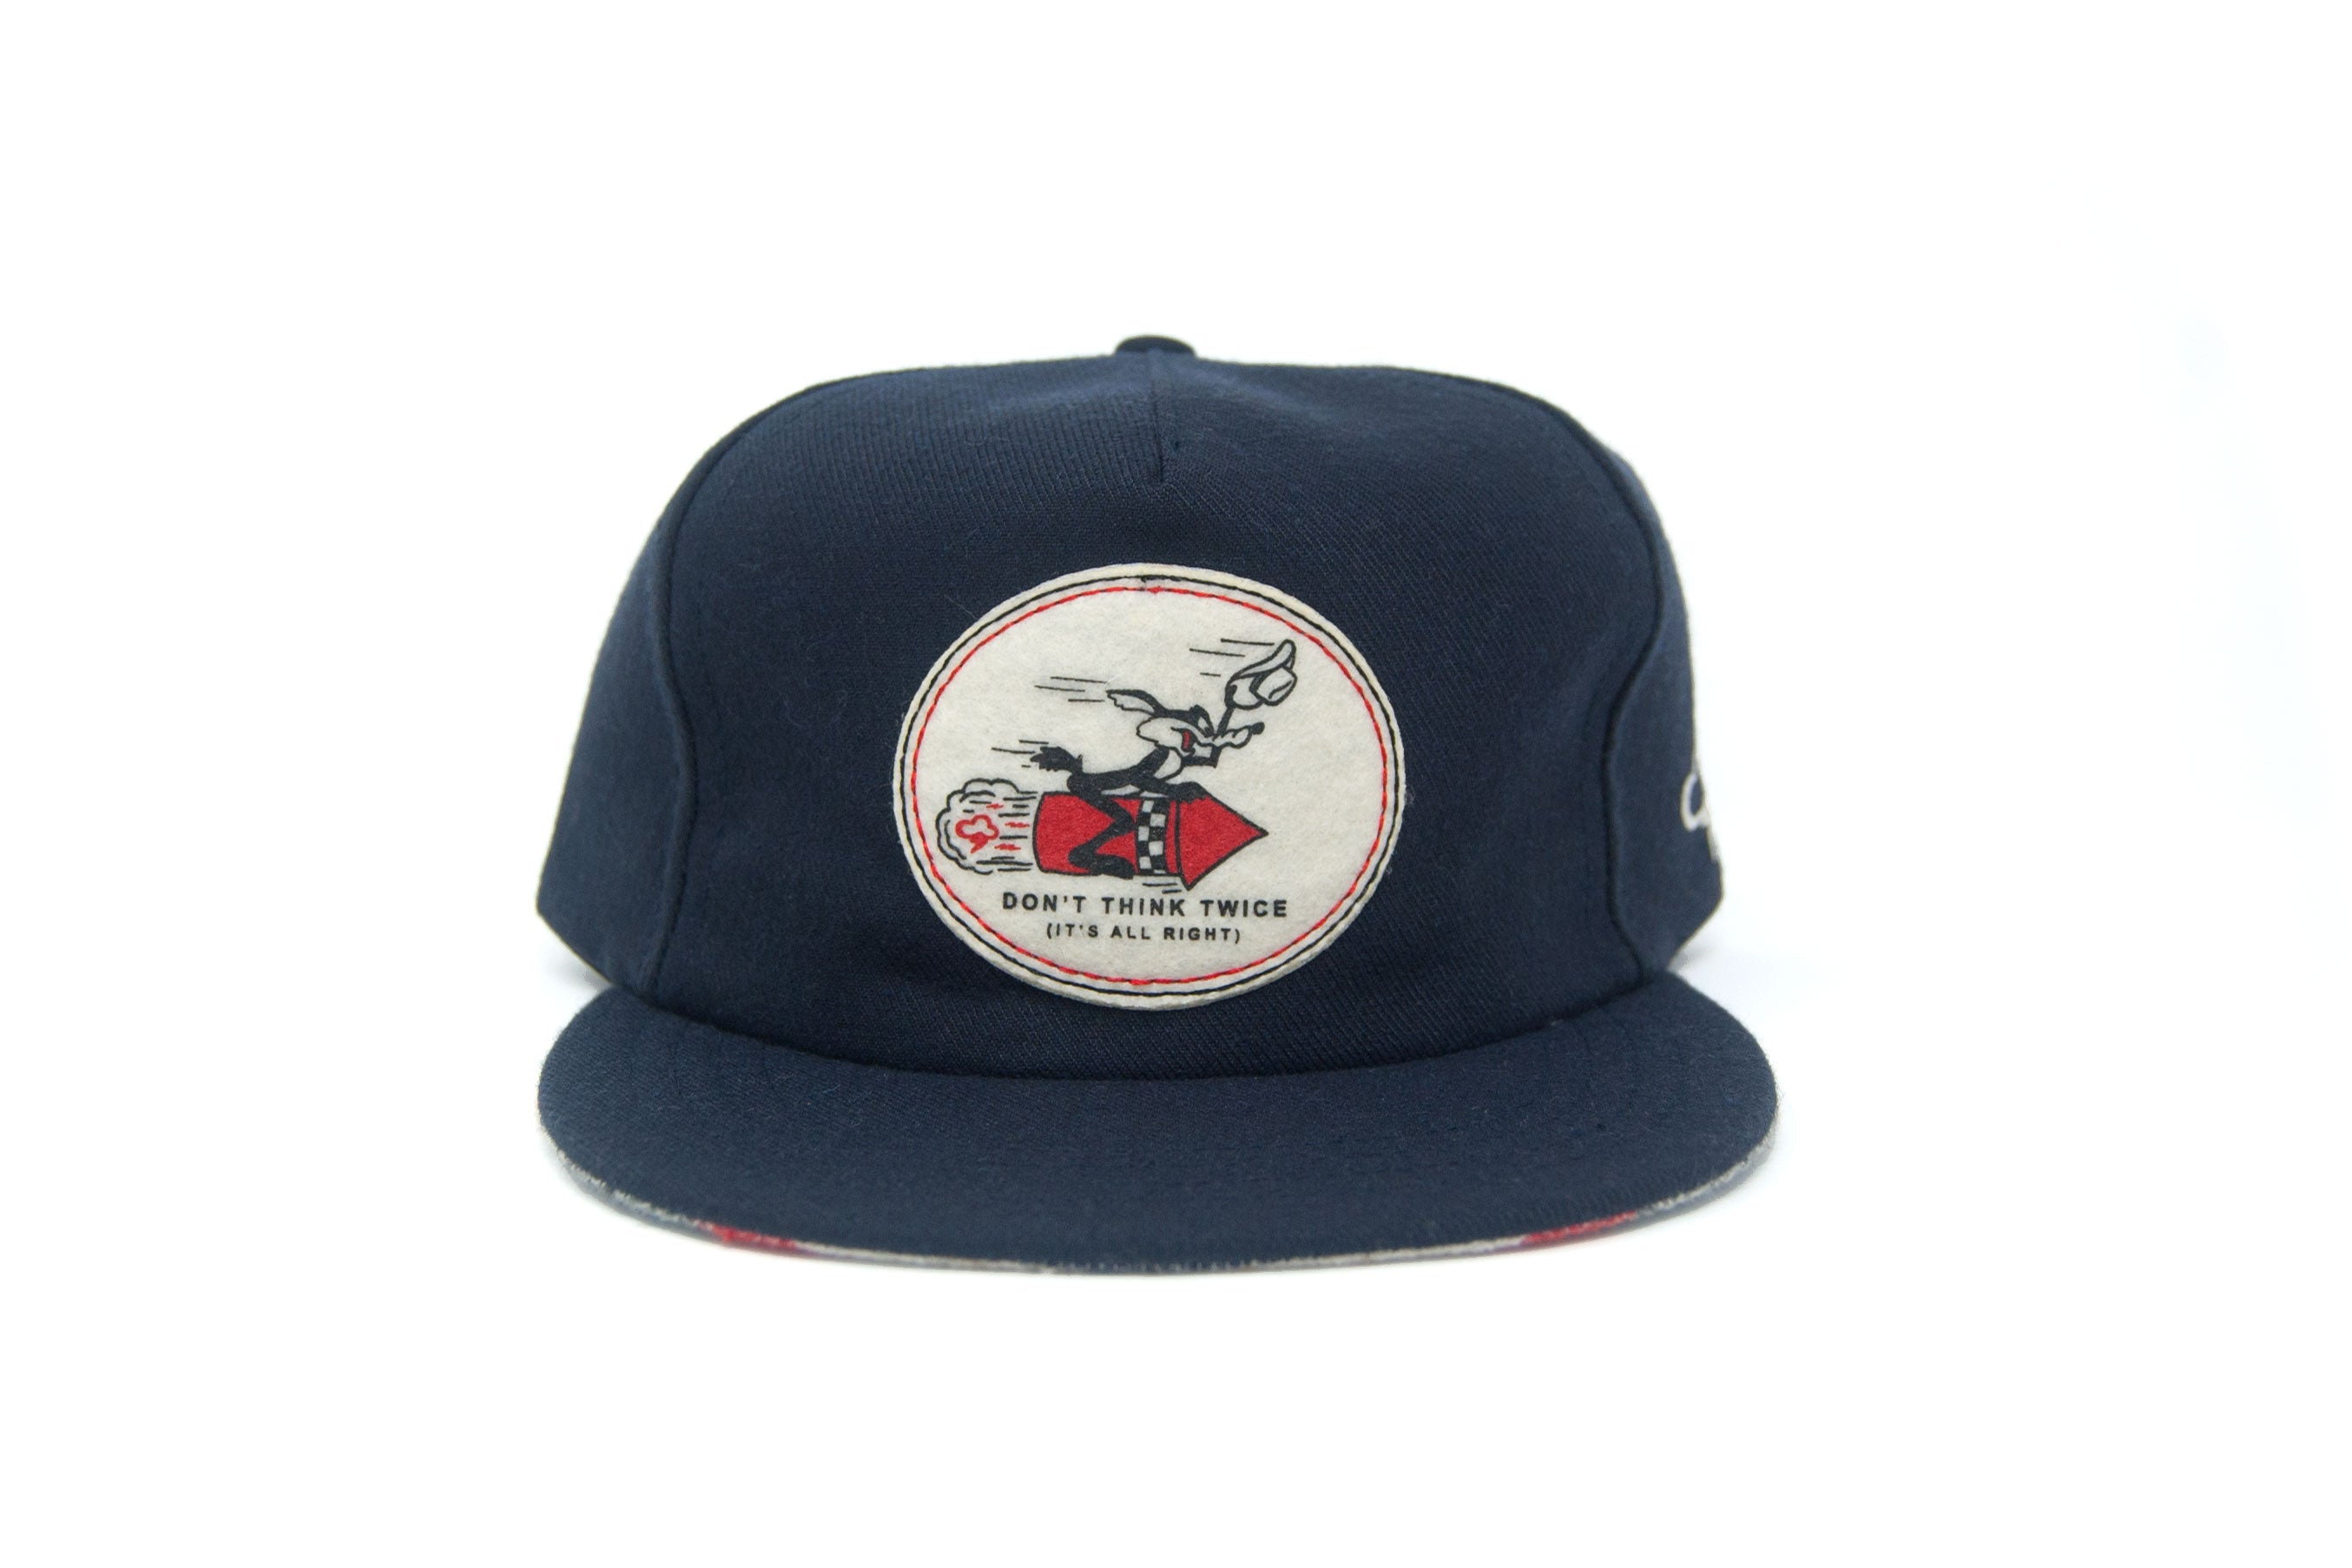 DON'T THINK TWICE Wool Strapback